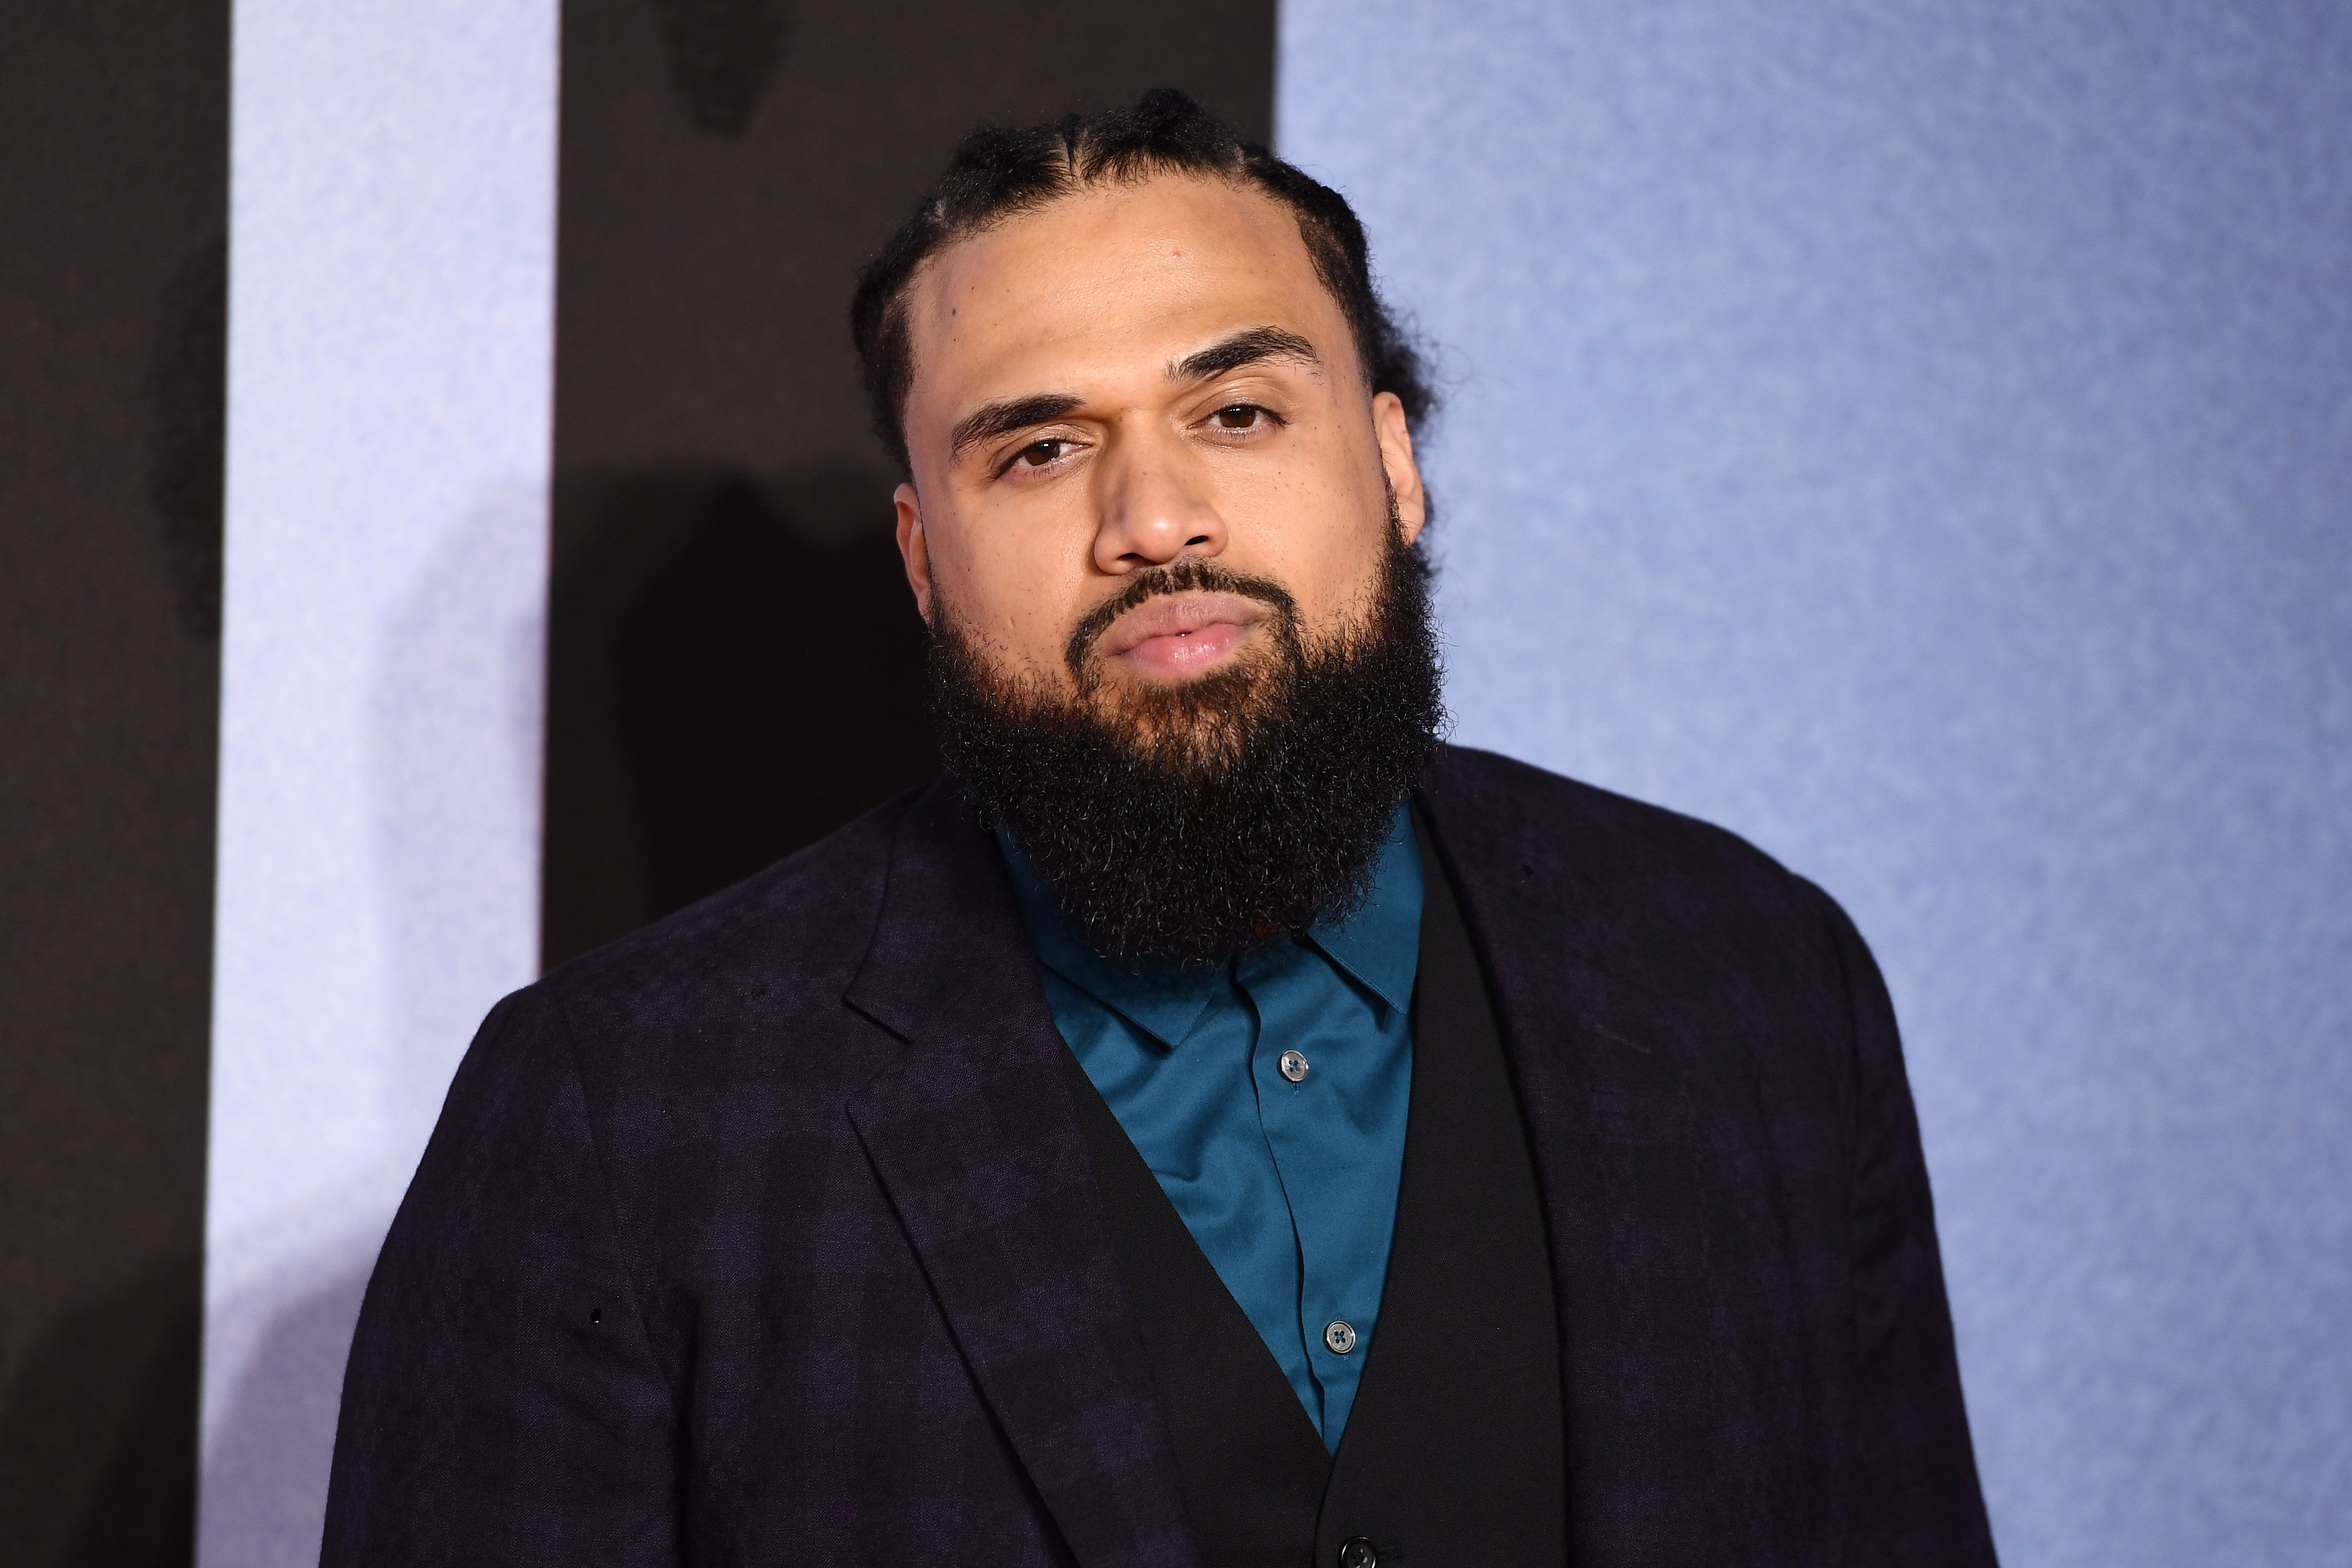 LONDON, ENGLAND - NOVEMBER 28: Steven Caple Jr. attends the European Premiere of 'Creed II' at BFI IMAX on November 28, 2018 in London, England. (Photo by Jeff Spicer/Getty Images)